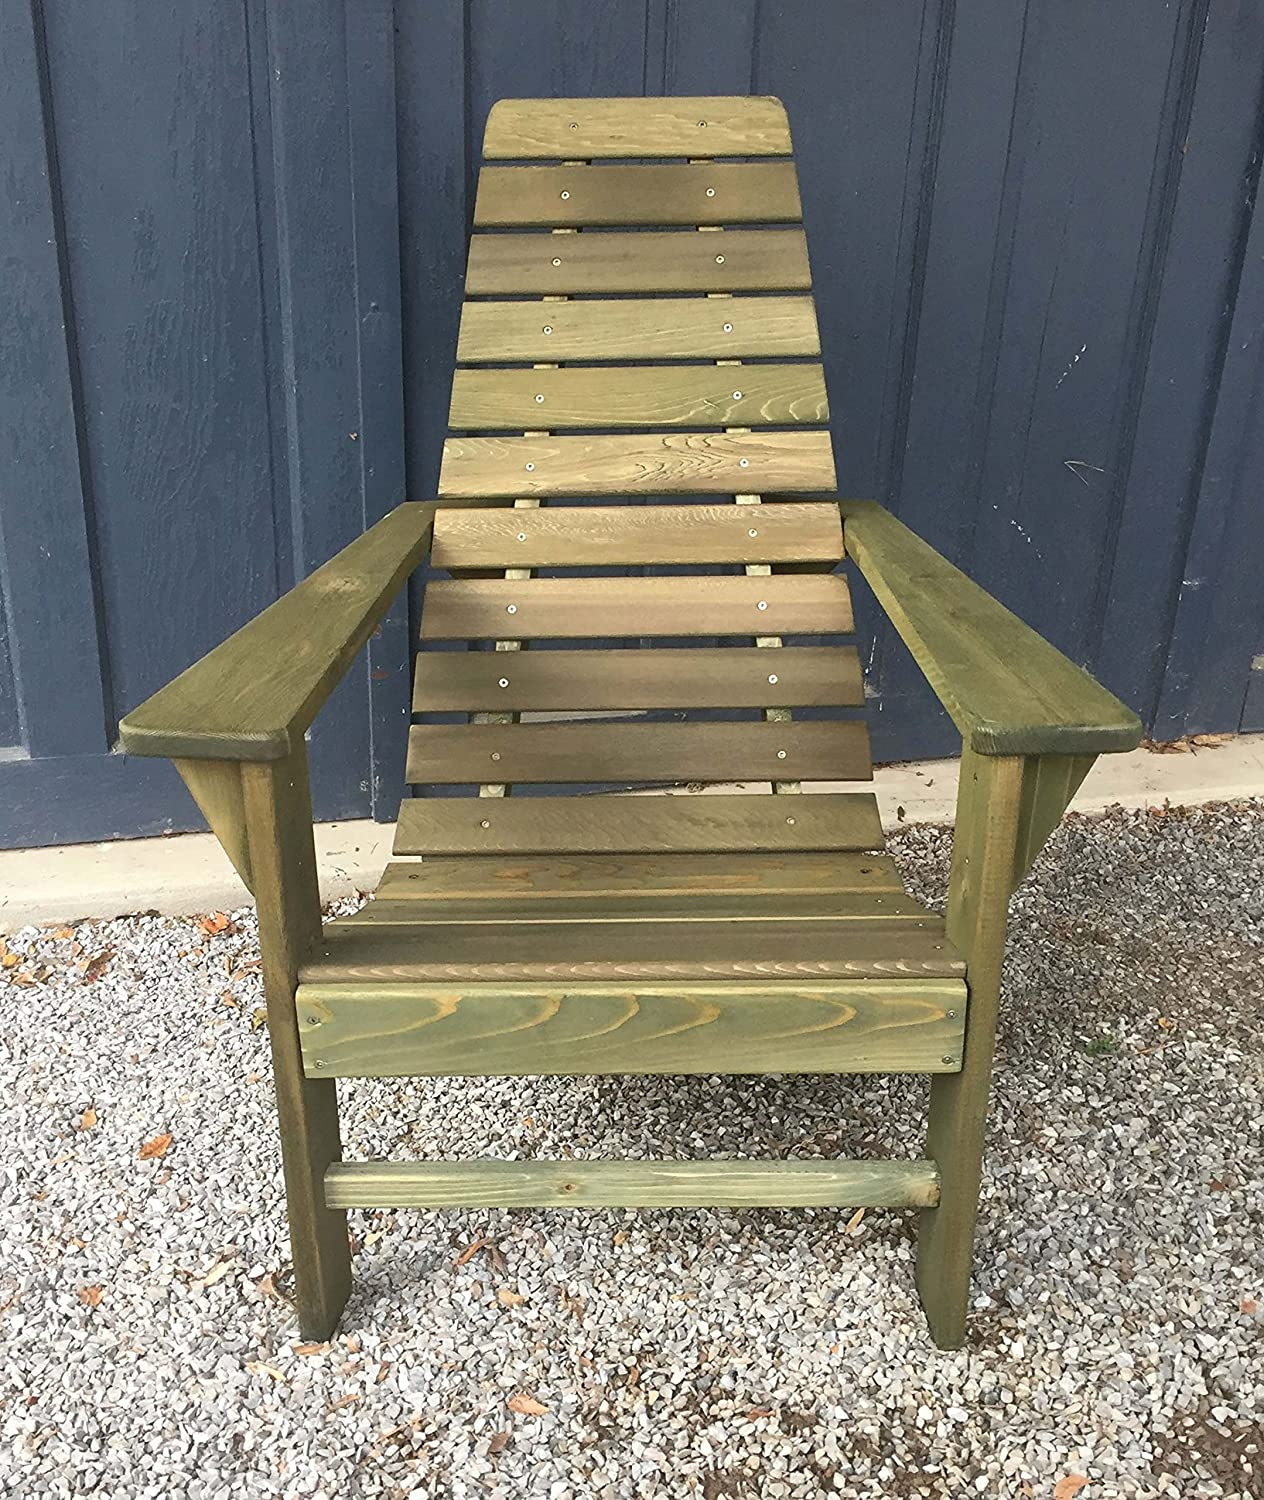 Cedar wood adirondack chair amish made outdoor chairs weather resistant wooden patio deck and porch outside furniture modern casual rustic style